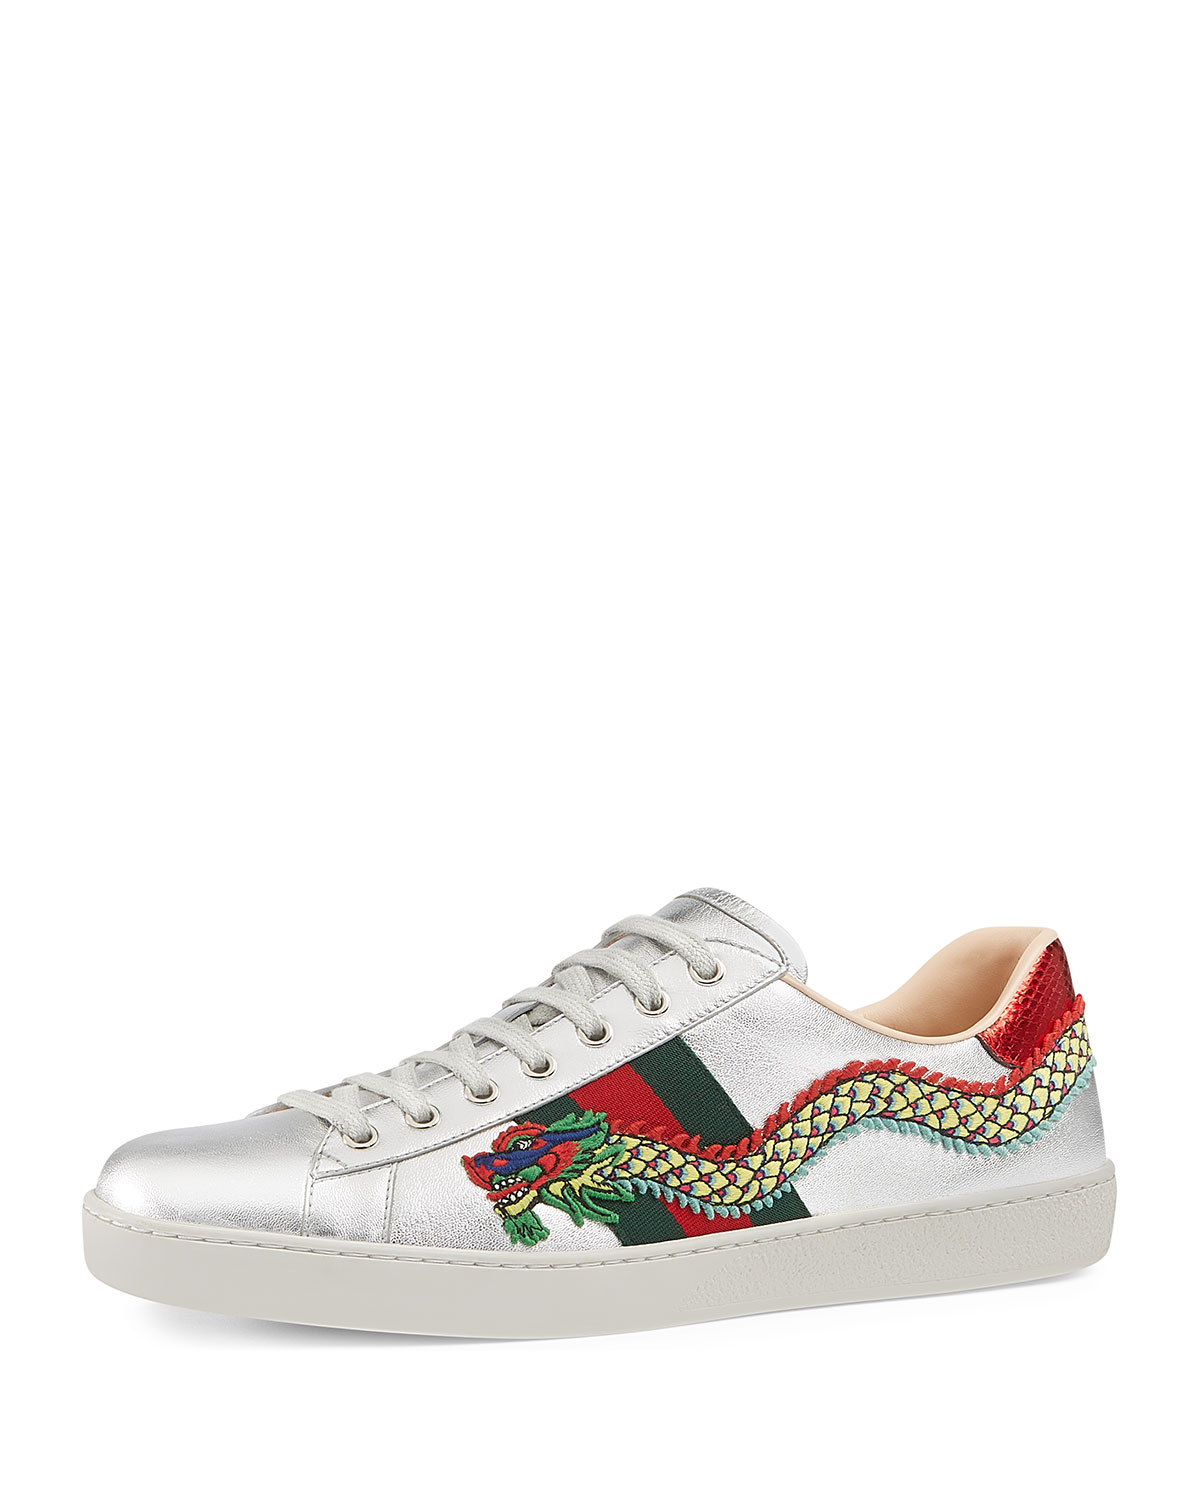 29906c7a538 Gucci Men s New Ace Embroidered Leather Low-Top Sneakers